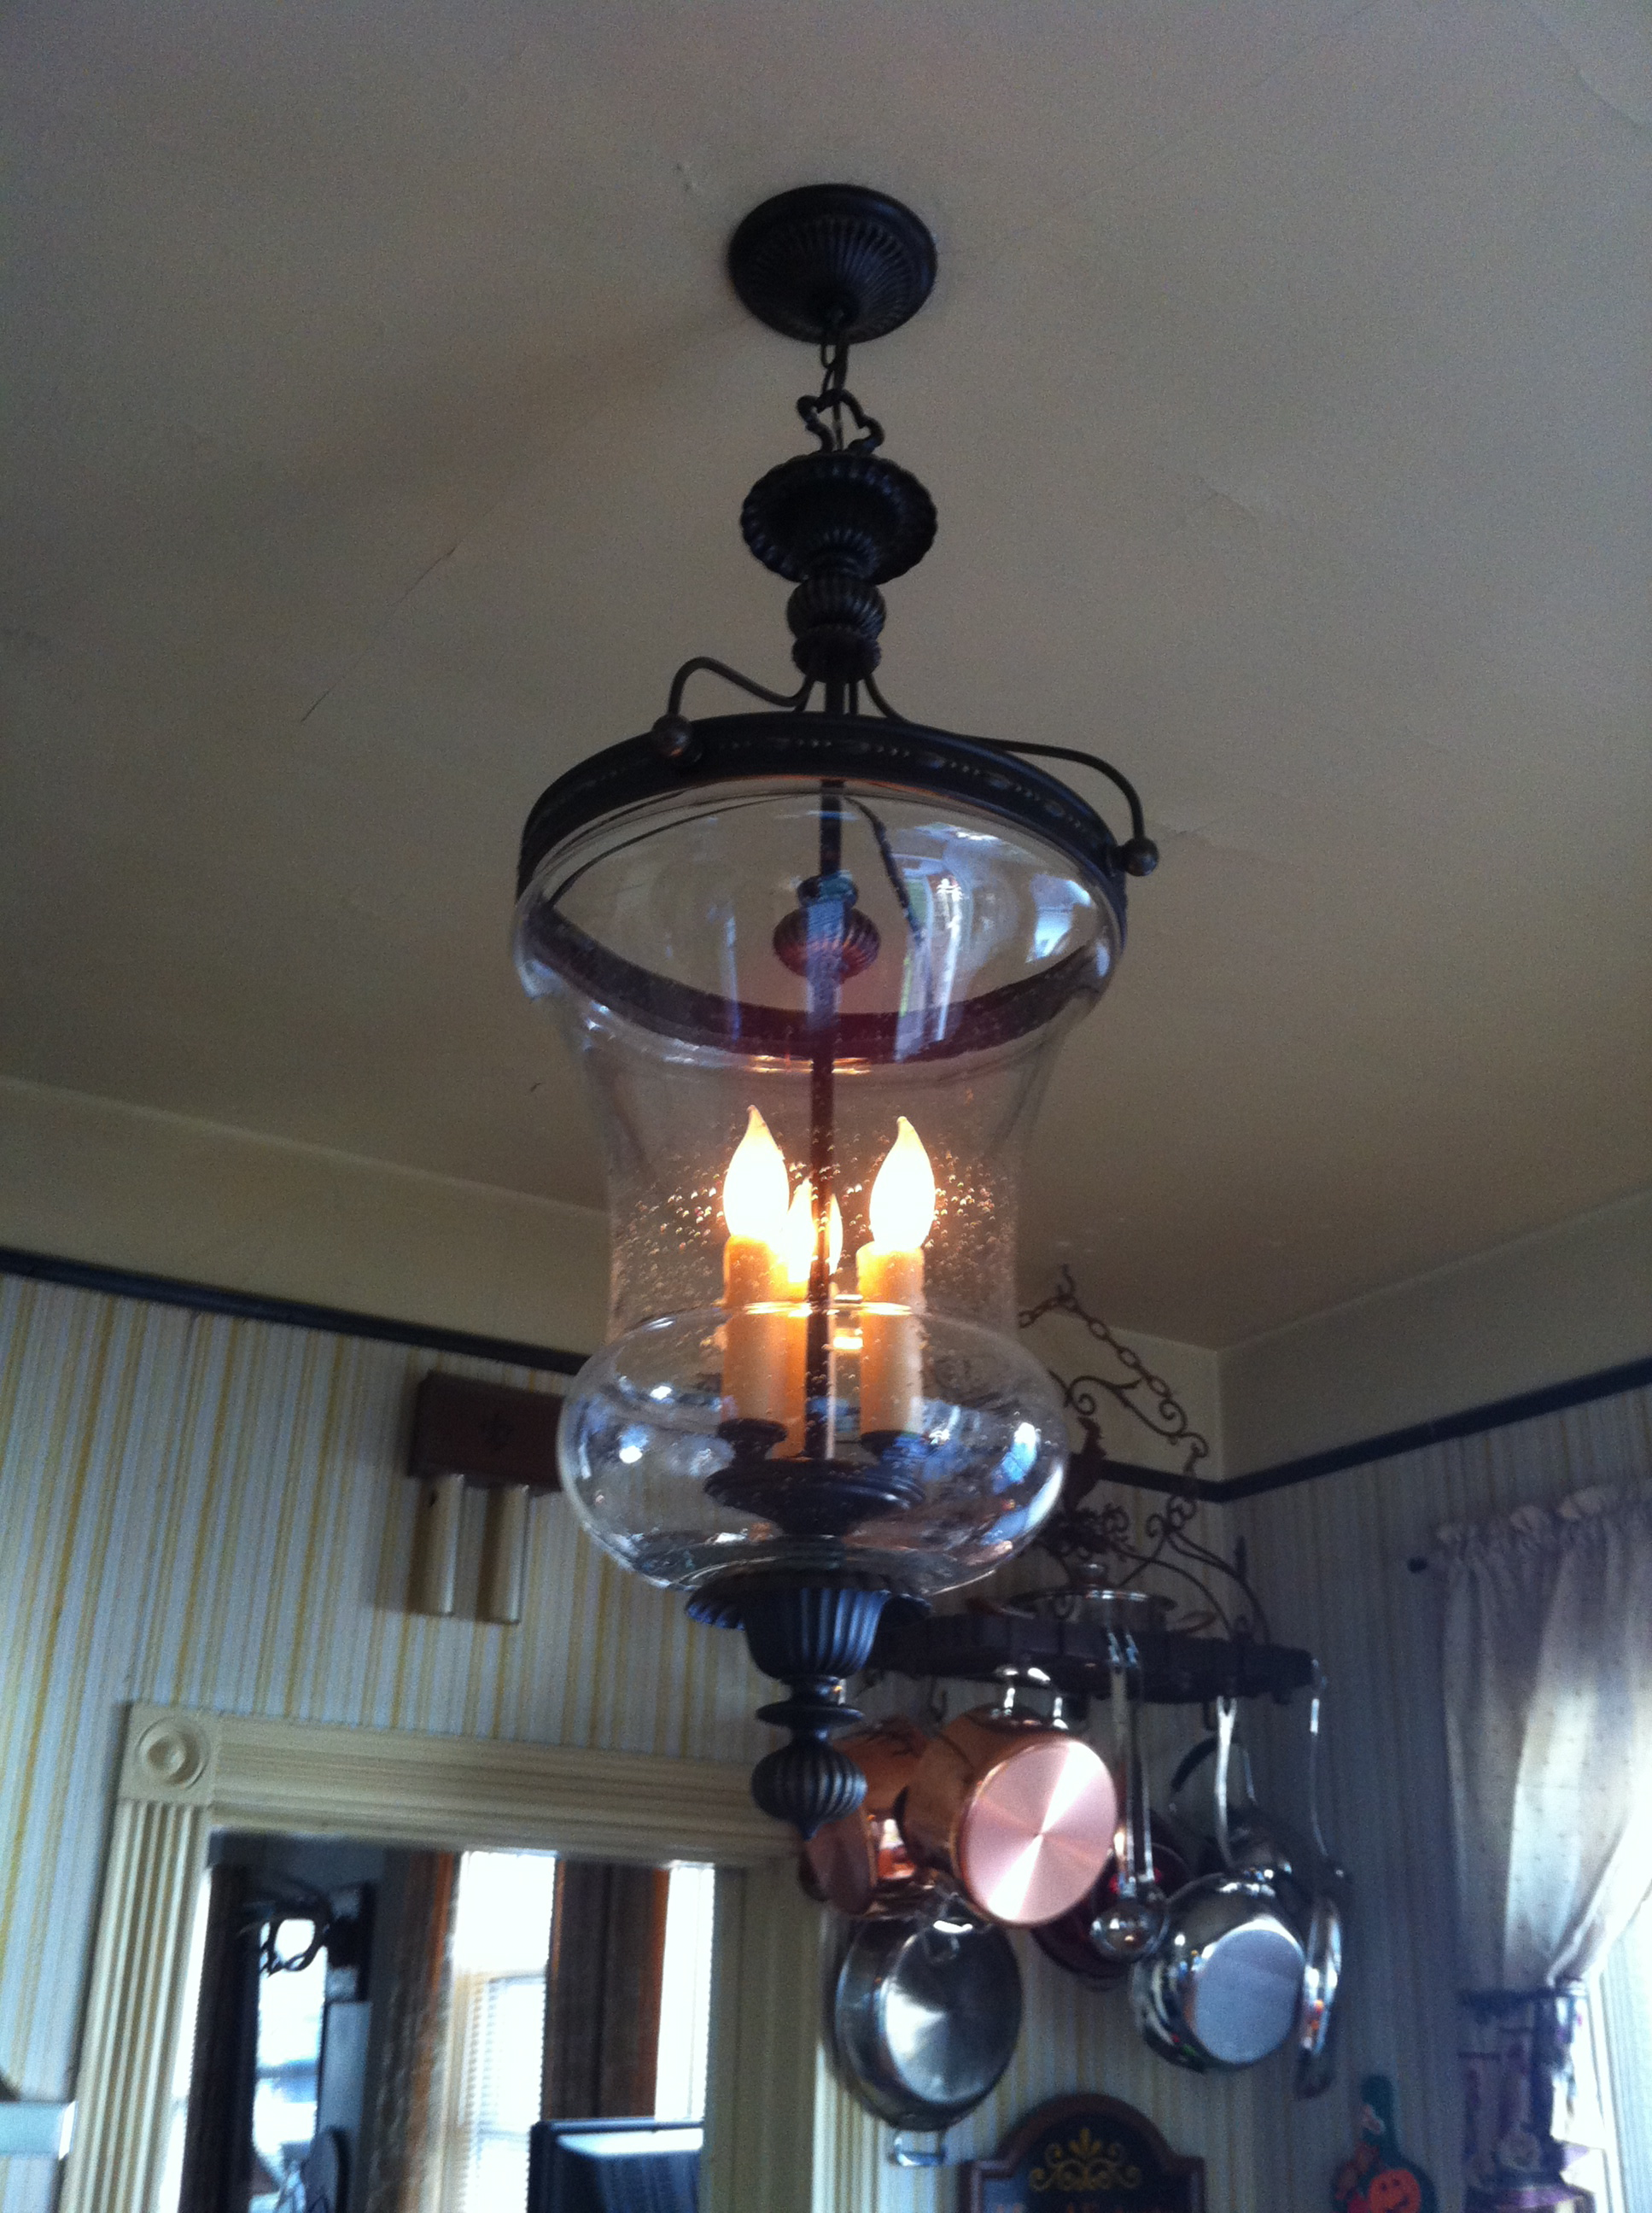 Restoring my antique French country kitchen one piece at a time. & Updating with a light from the turn of the century. | DeniéBernier.com azcodes.com